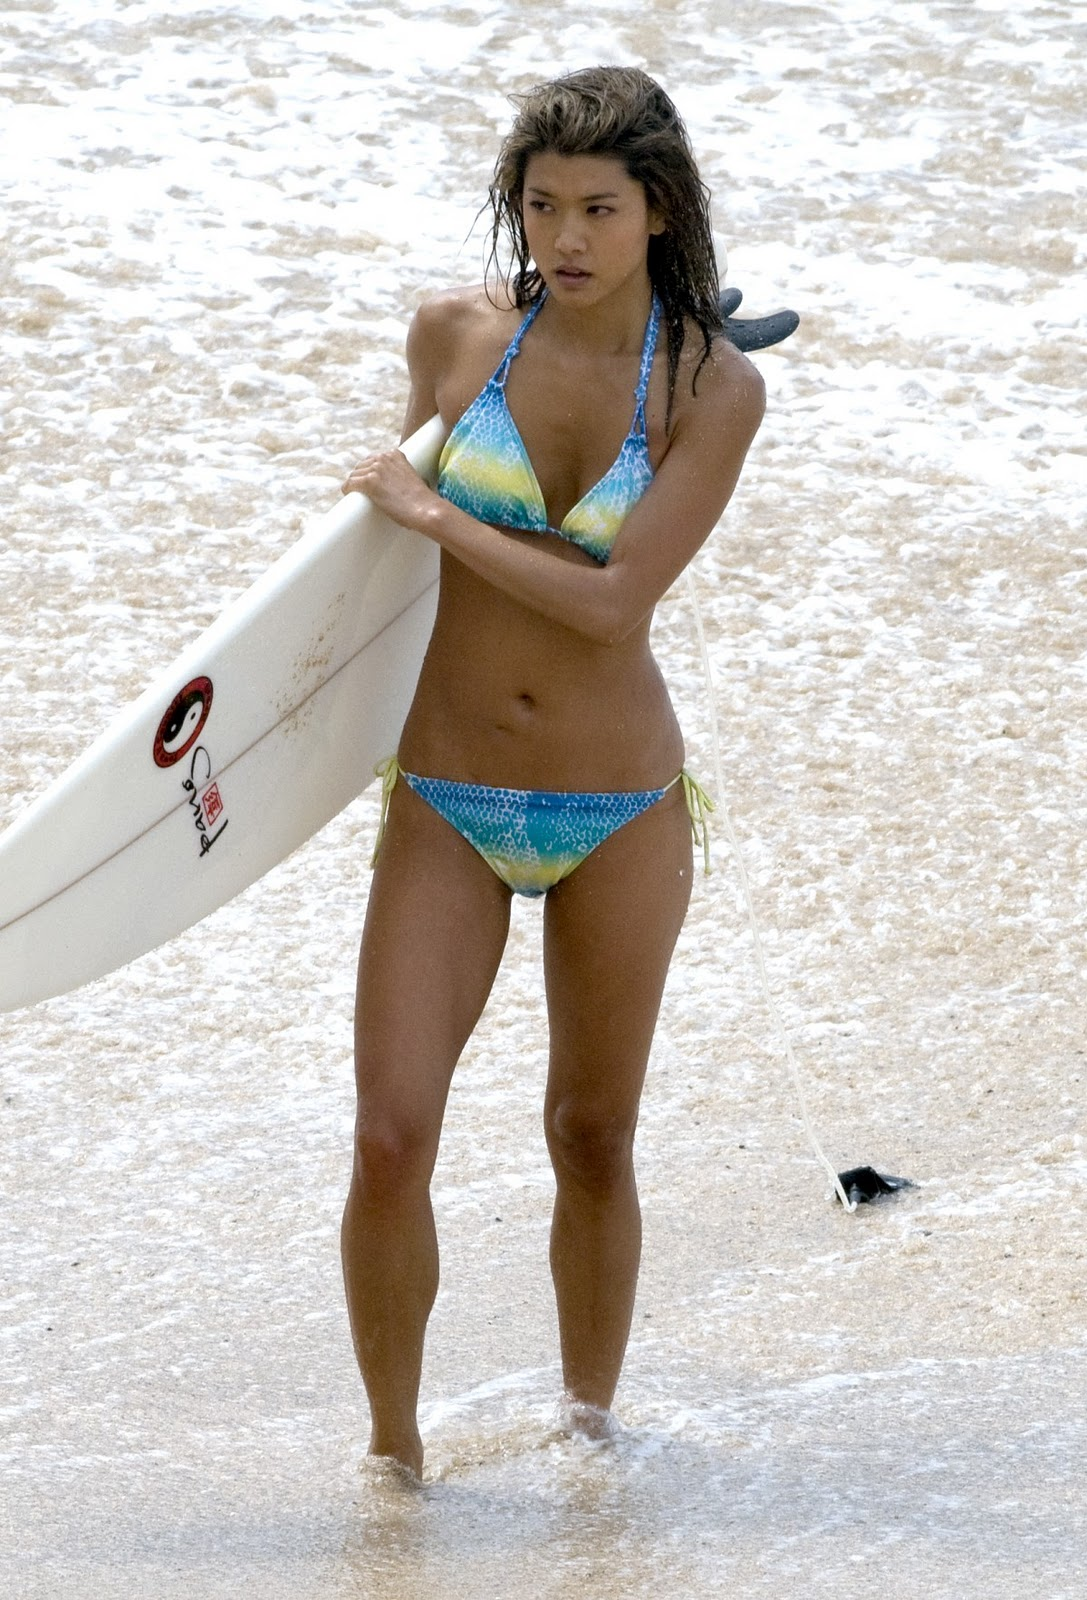 Grace Park CALVES part 2 ( from Hawaii Five O show )